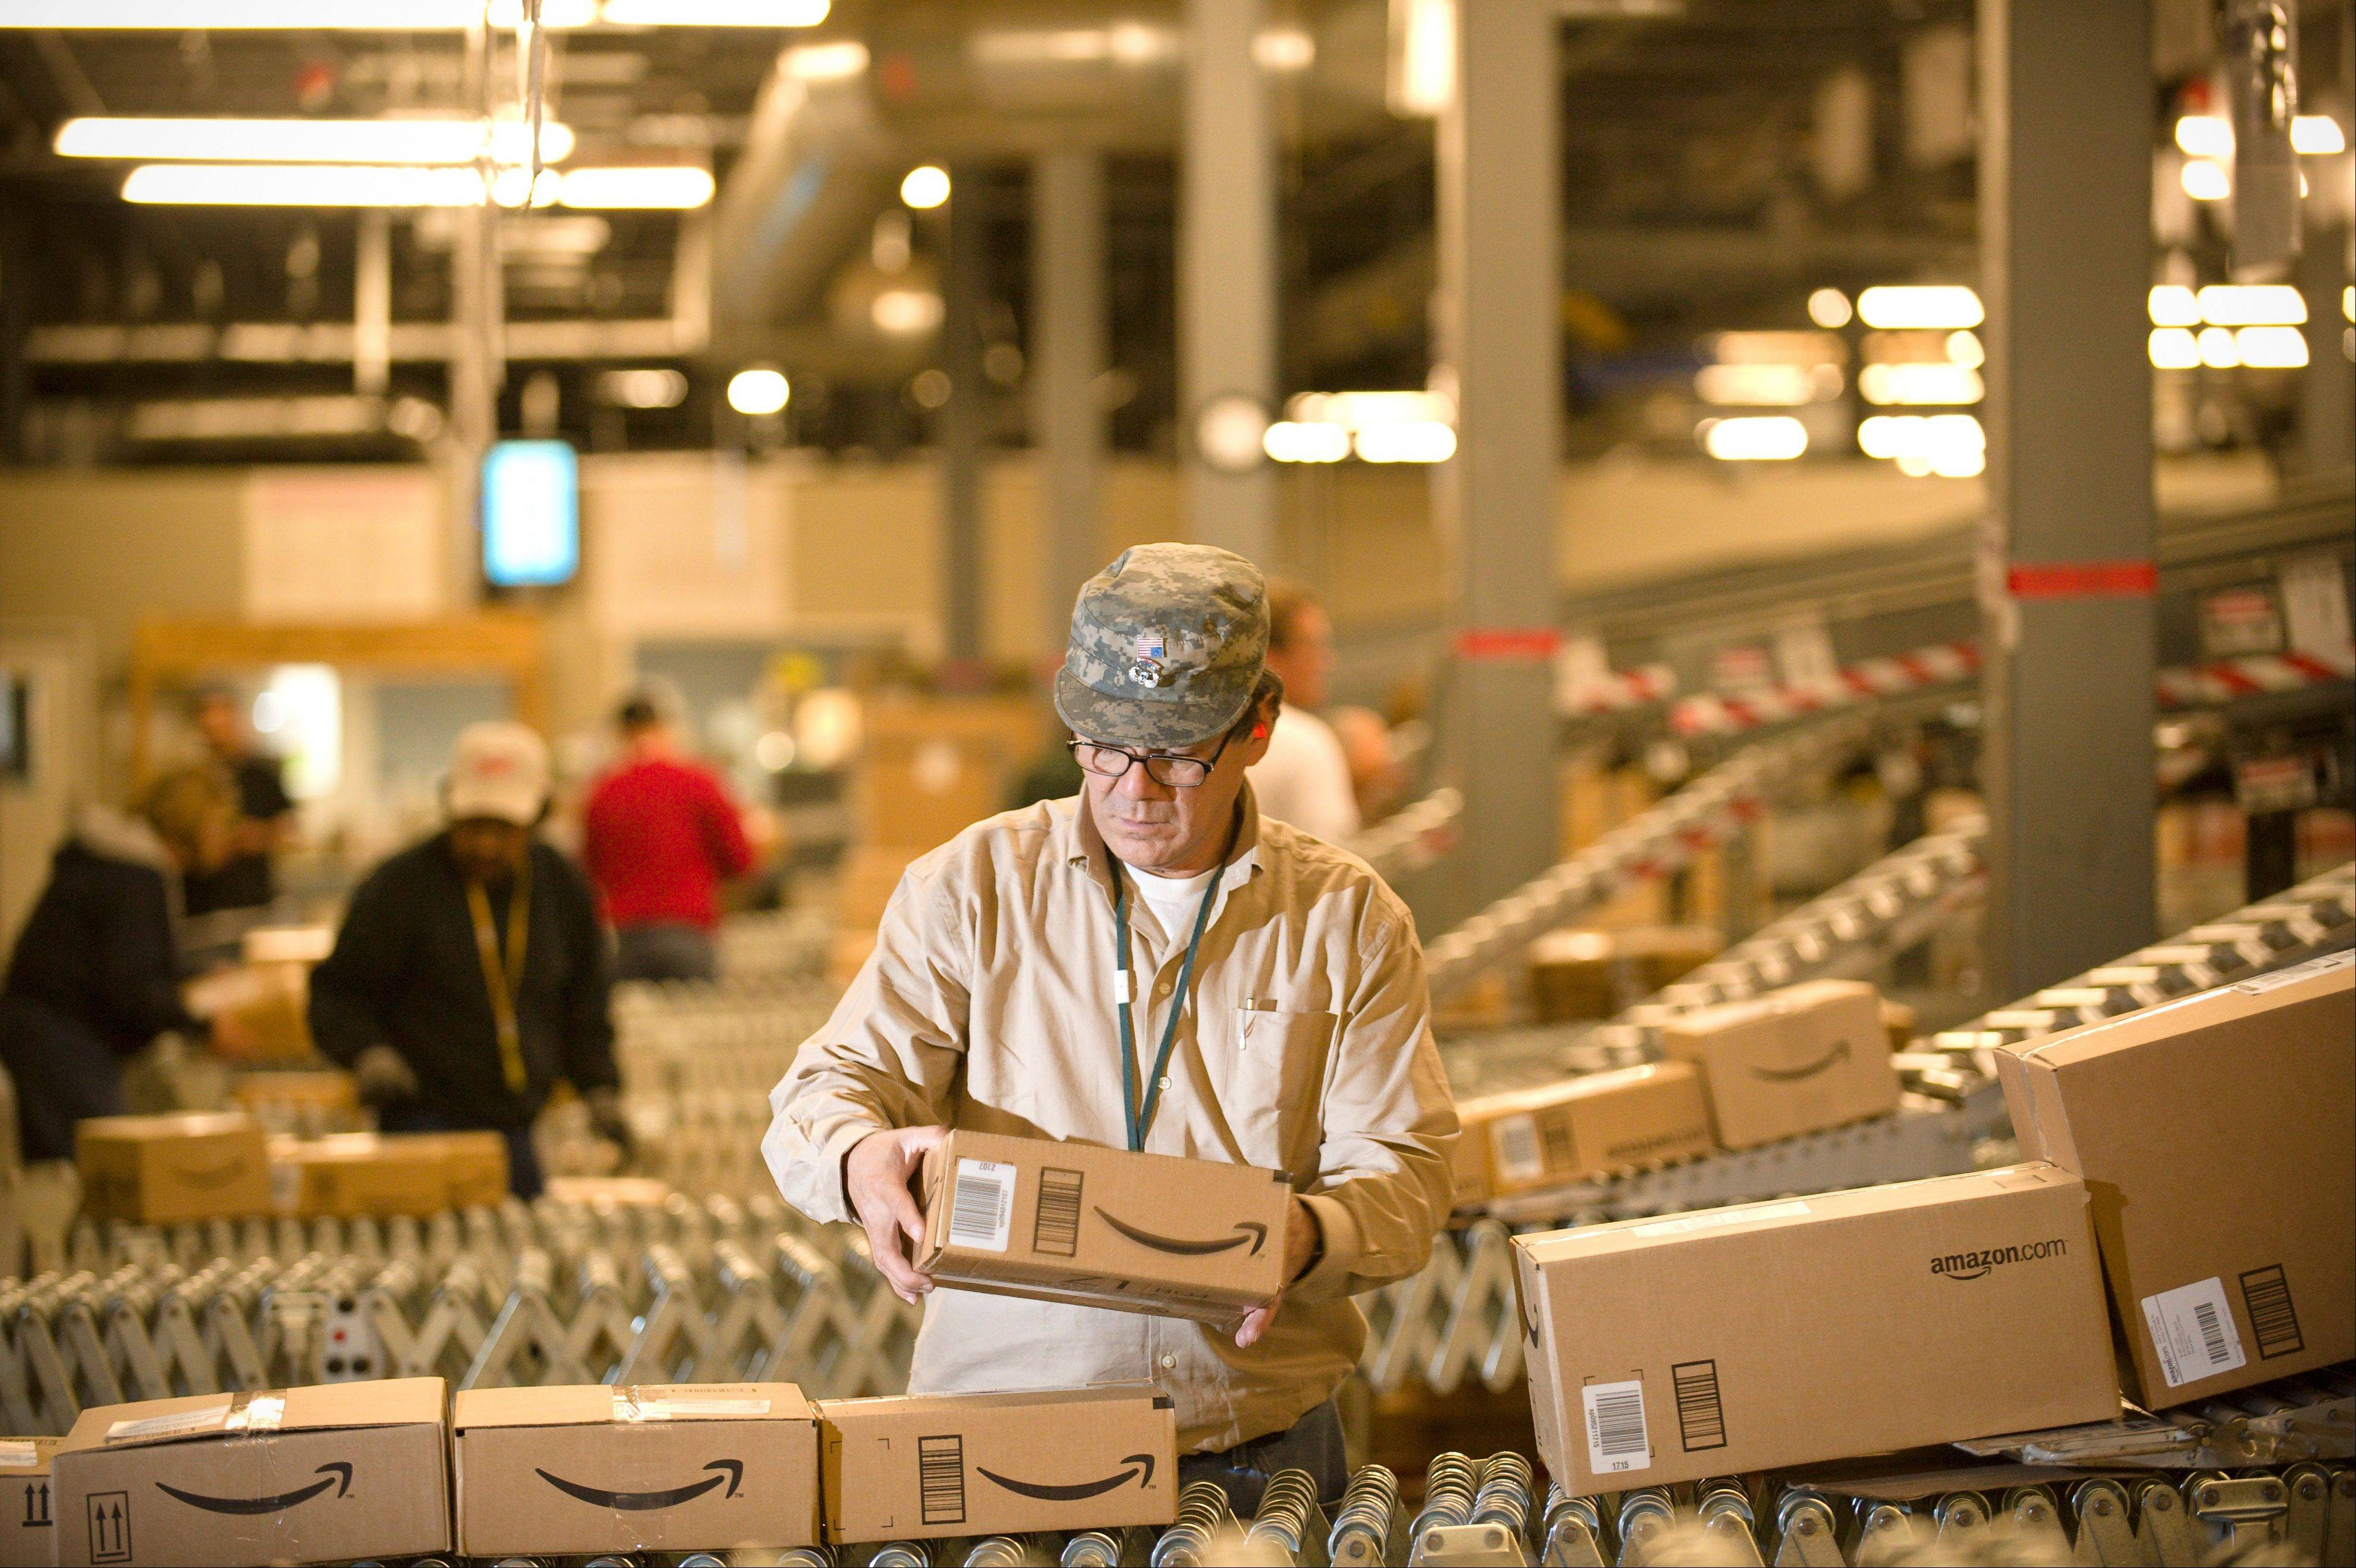 An Amazon.com employee processes orders at its Fernley, Nev., warehouse. A storm is brewing in Europe over how little Internet powerhouses like Google and Amazon are paying in tax.